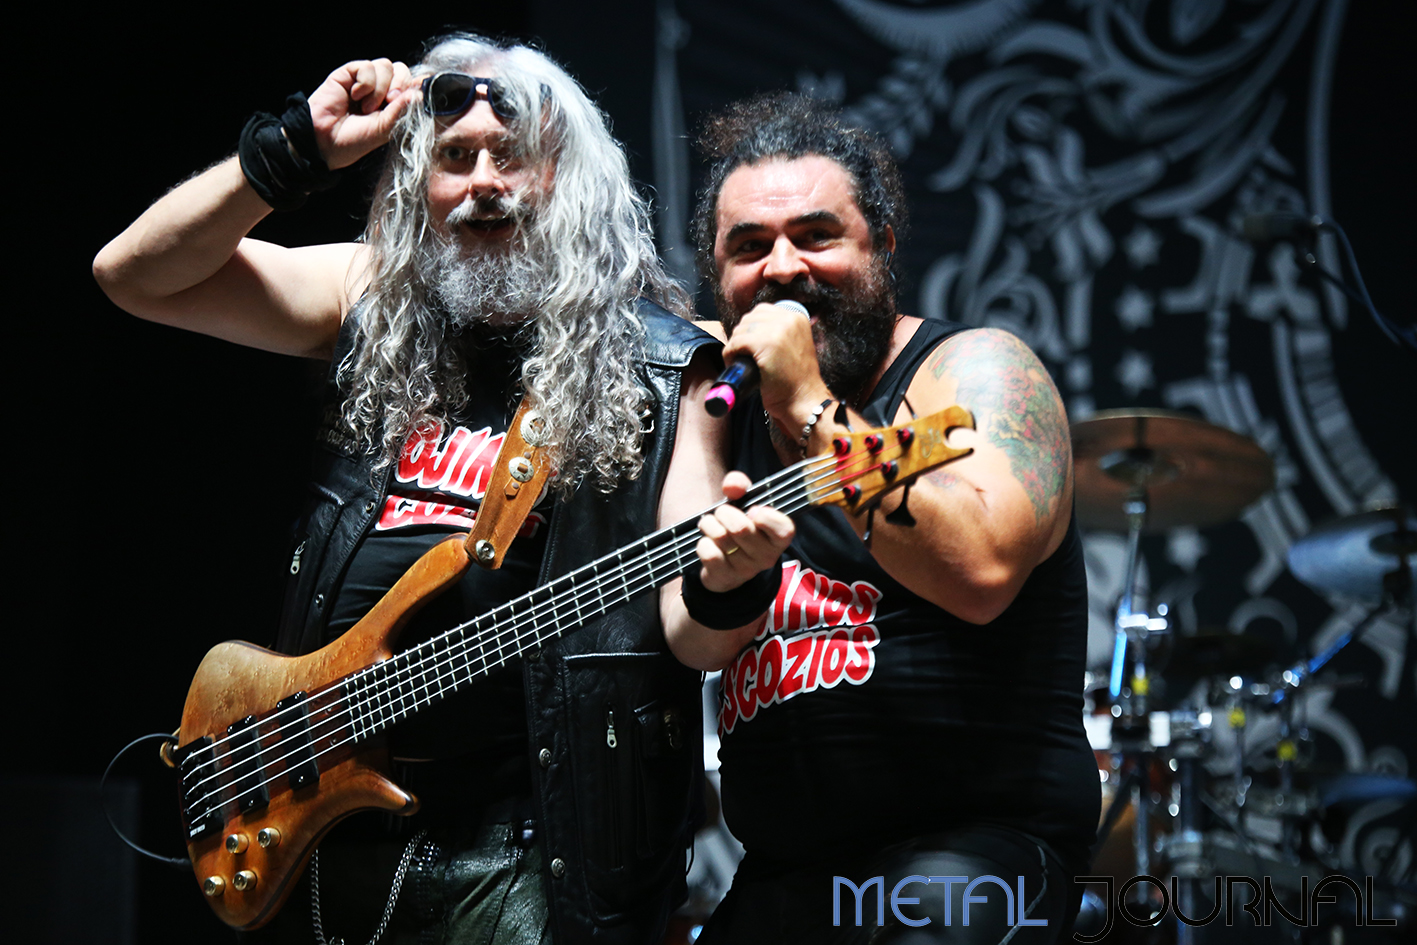 mojinos escozios - leyendas del rock 2019 metal journal pic 1